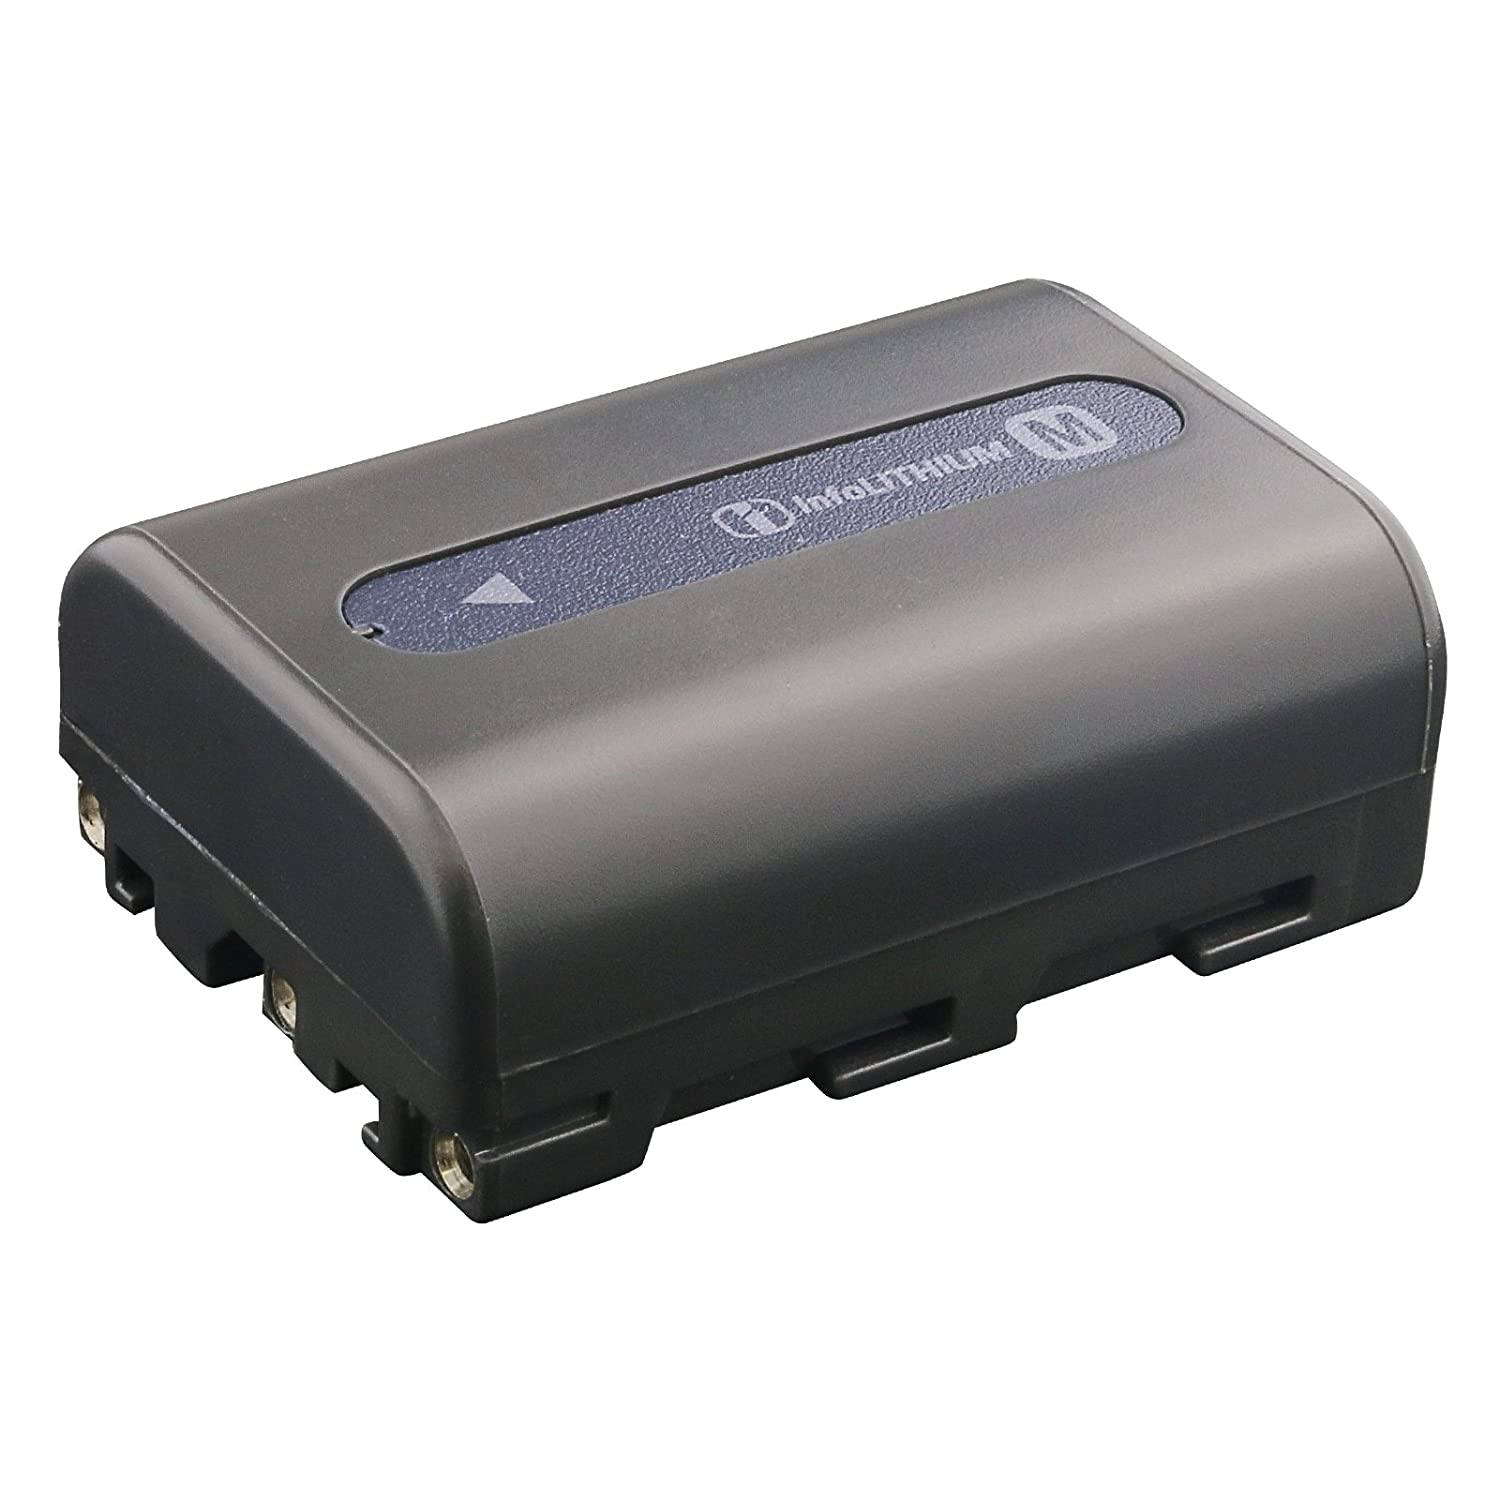 Battery Replacement for Sony DCR-PC105E DCR-PC105E DCR-PC105K DCR-PC110 DCR-PC110E DCR-PC115 DCR-PC115E Record